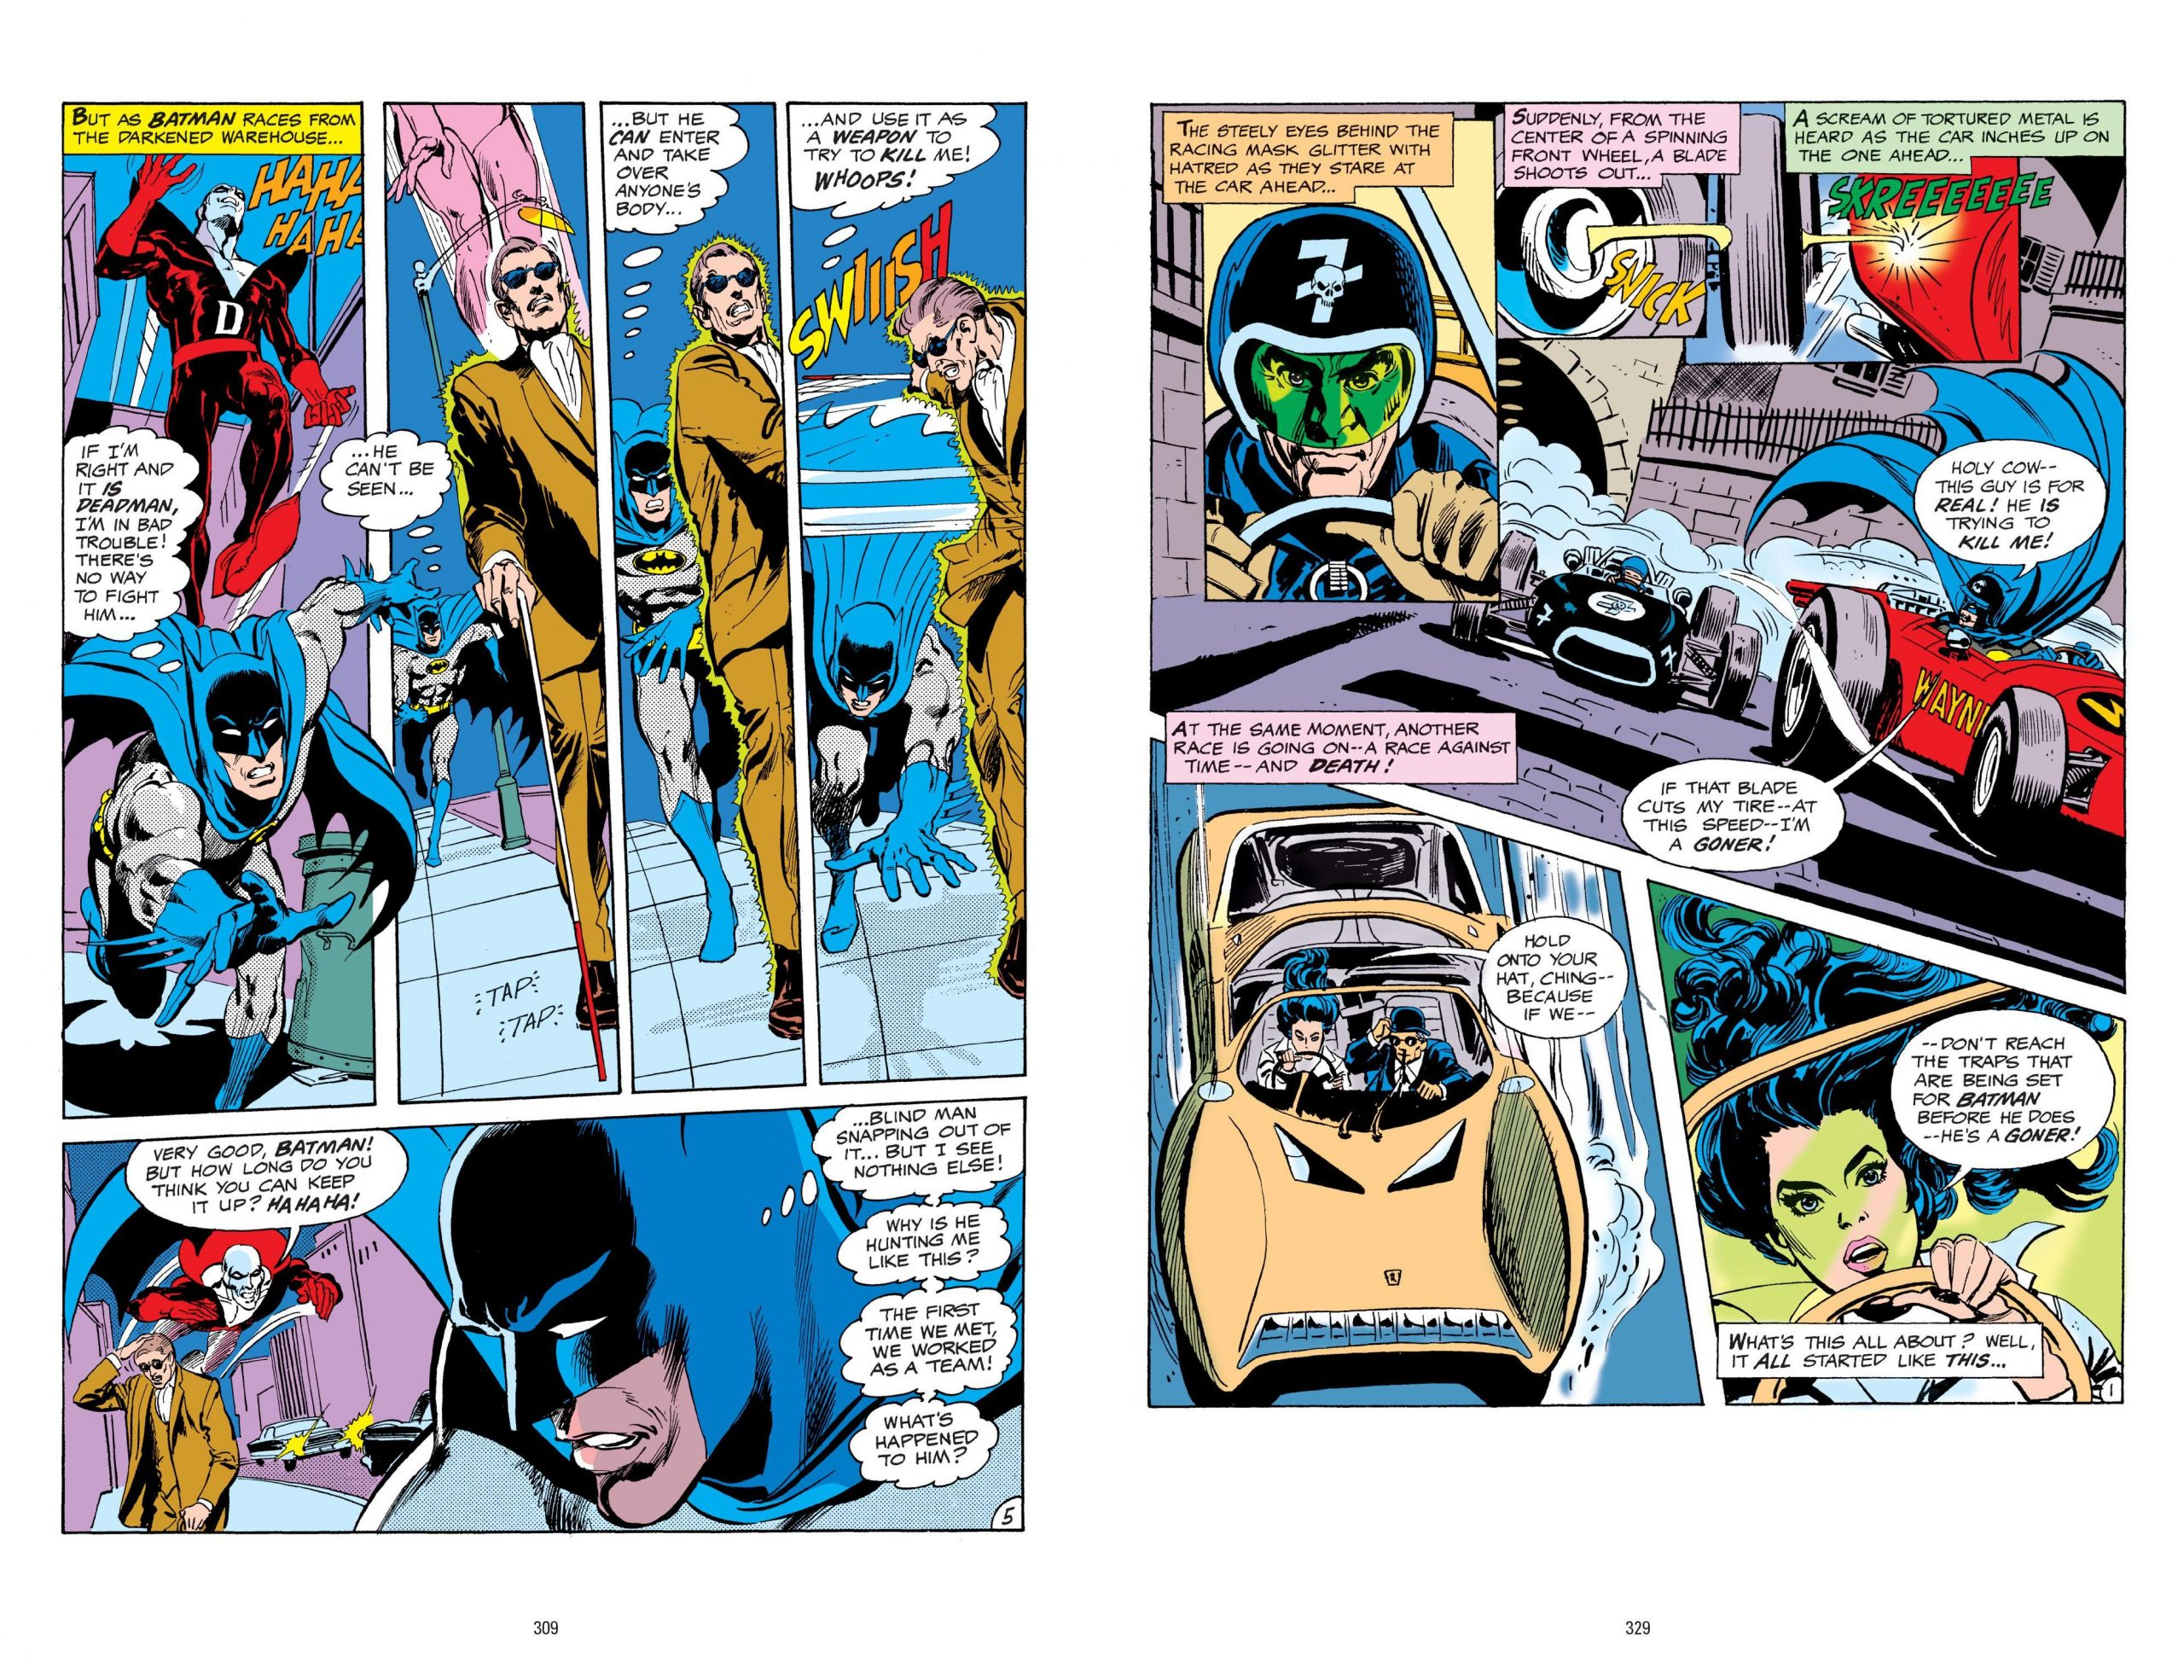 Batman in the Brave and the Bold - The Bronze Age V1 review